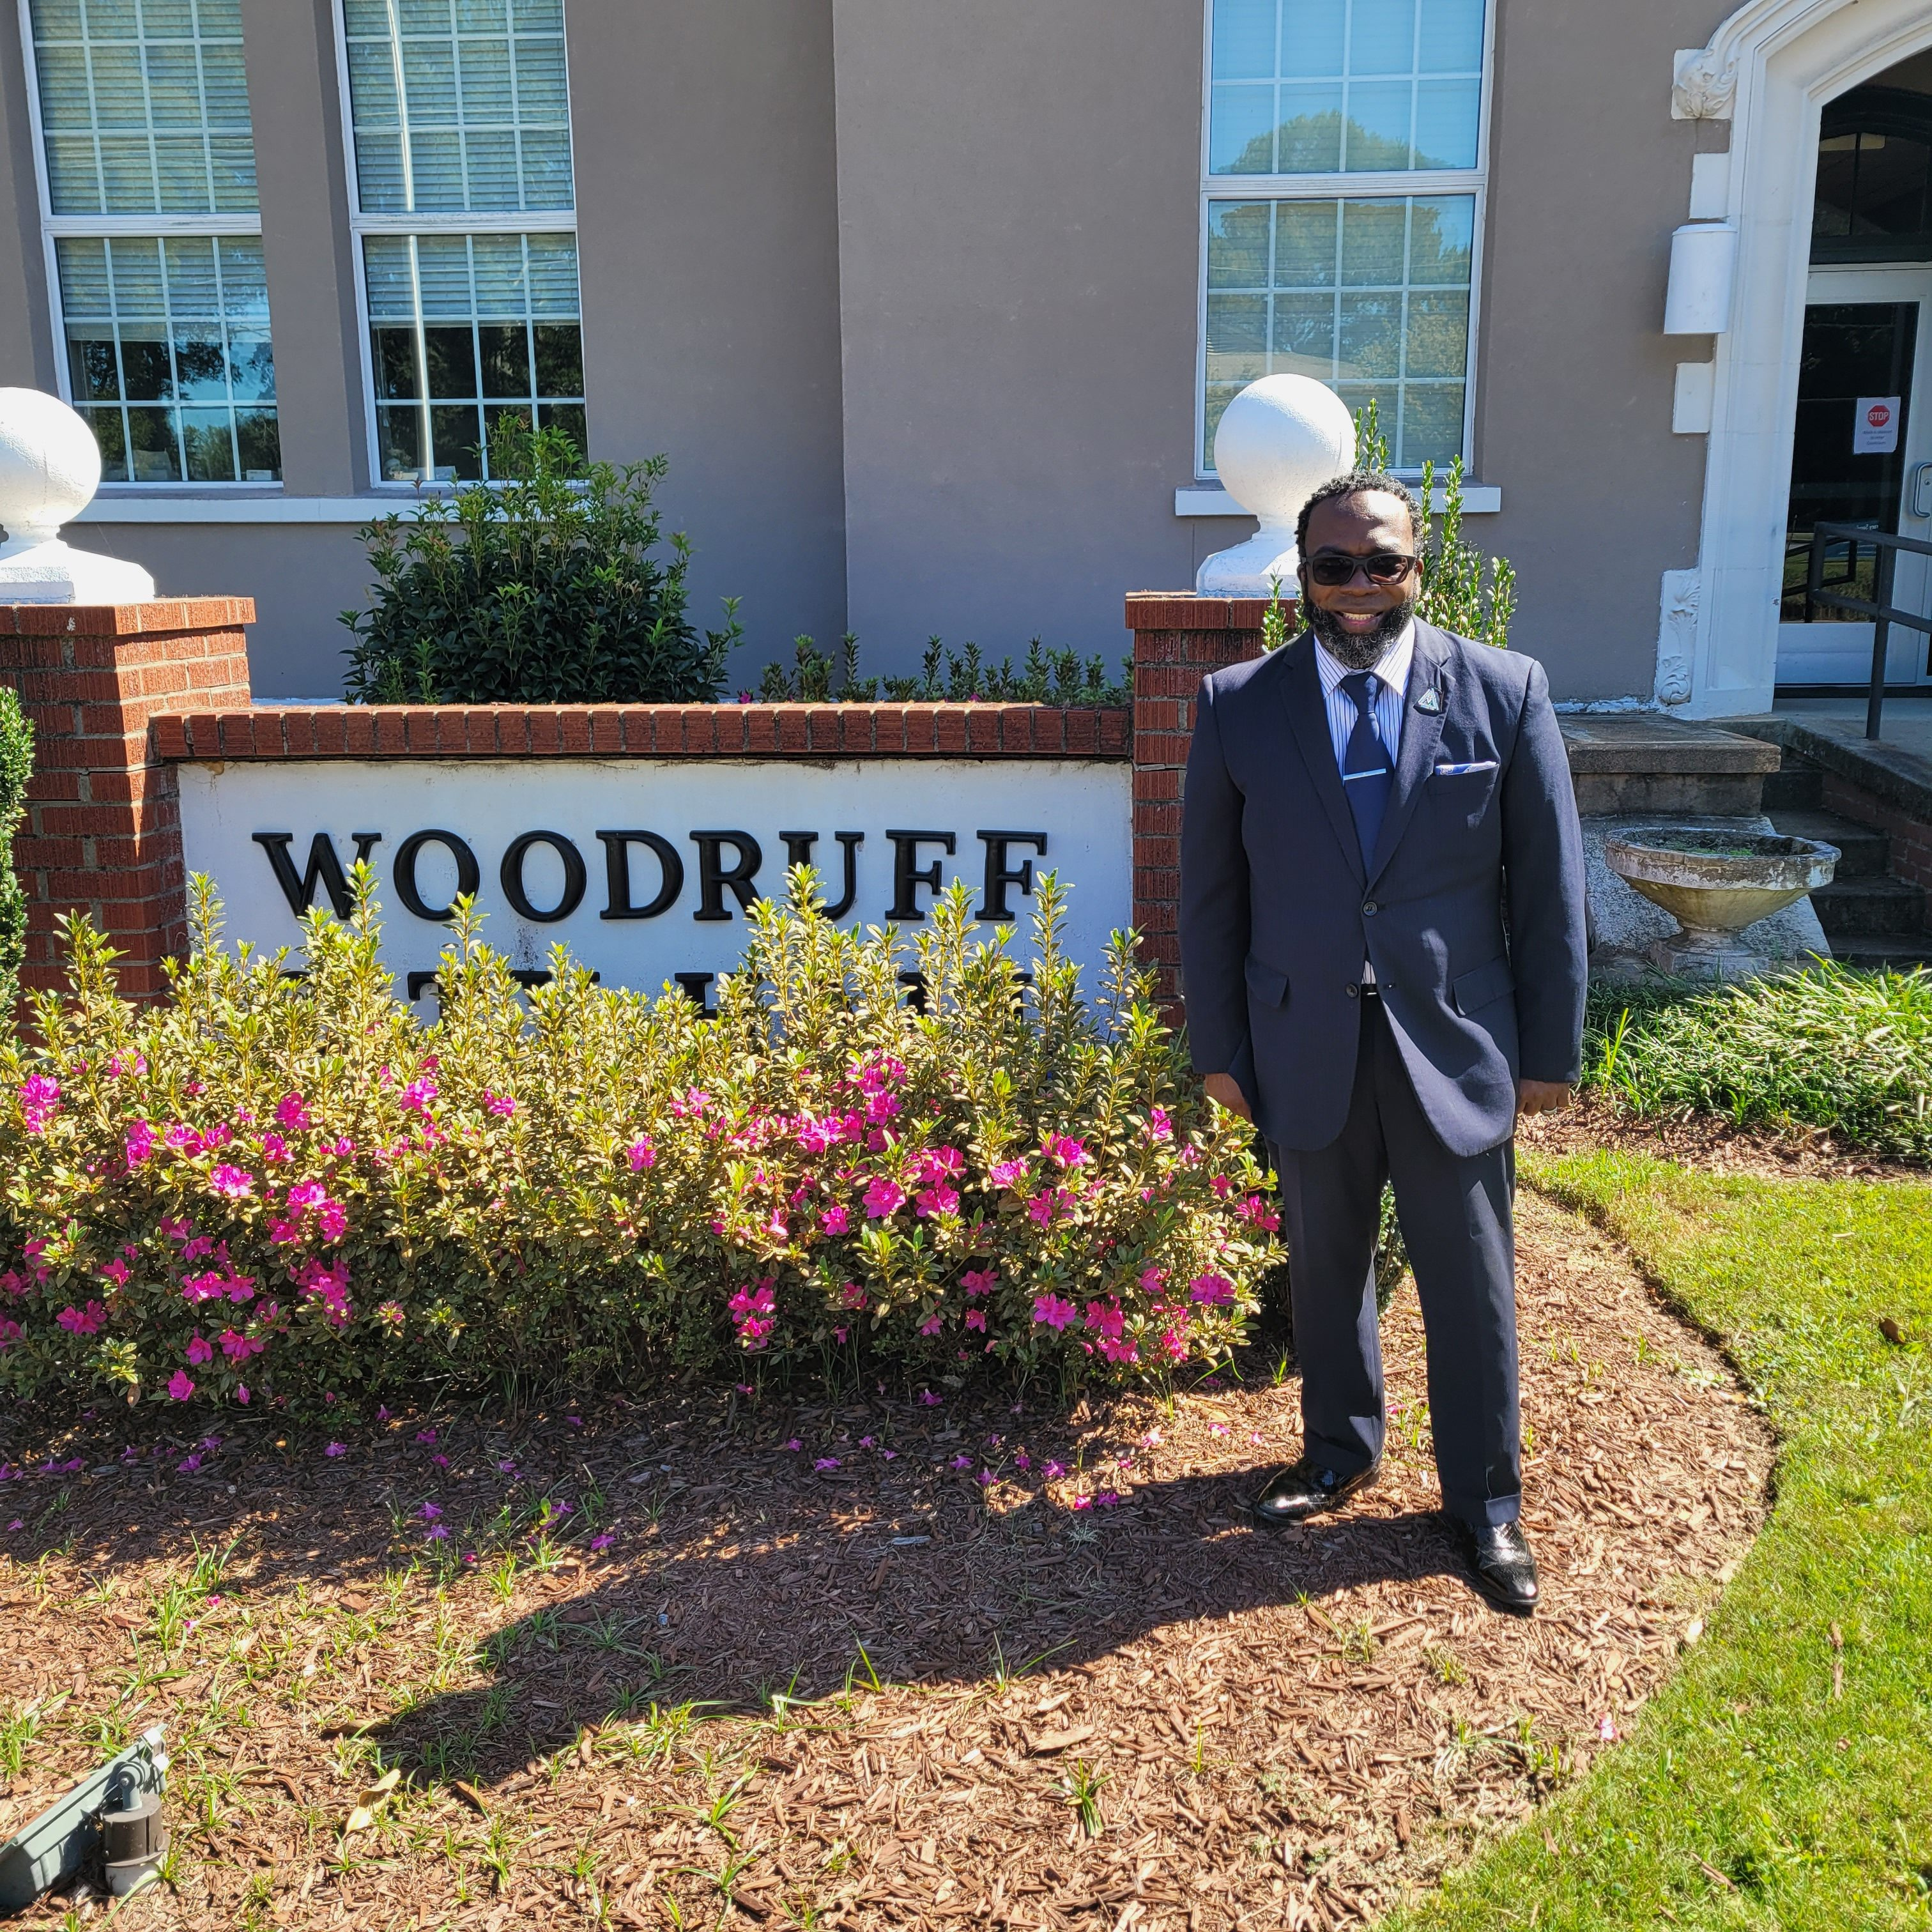 City of Woodruff Appoints First City Chaplain